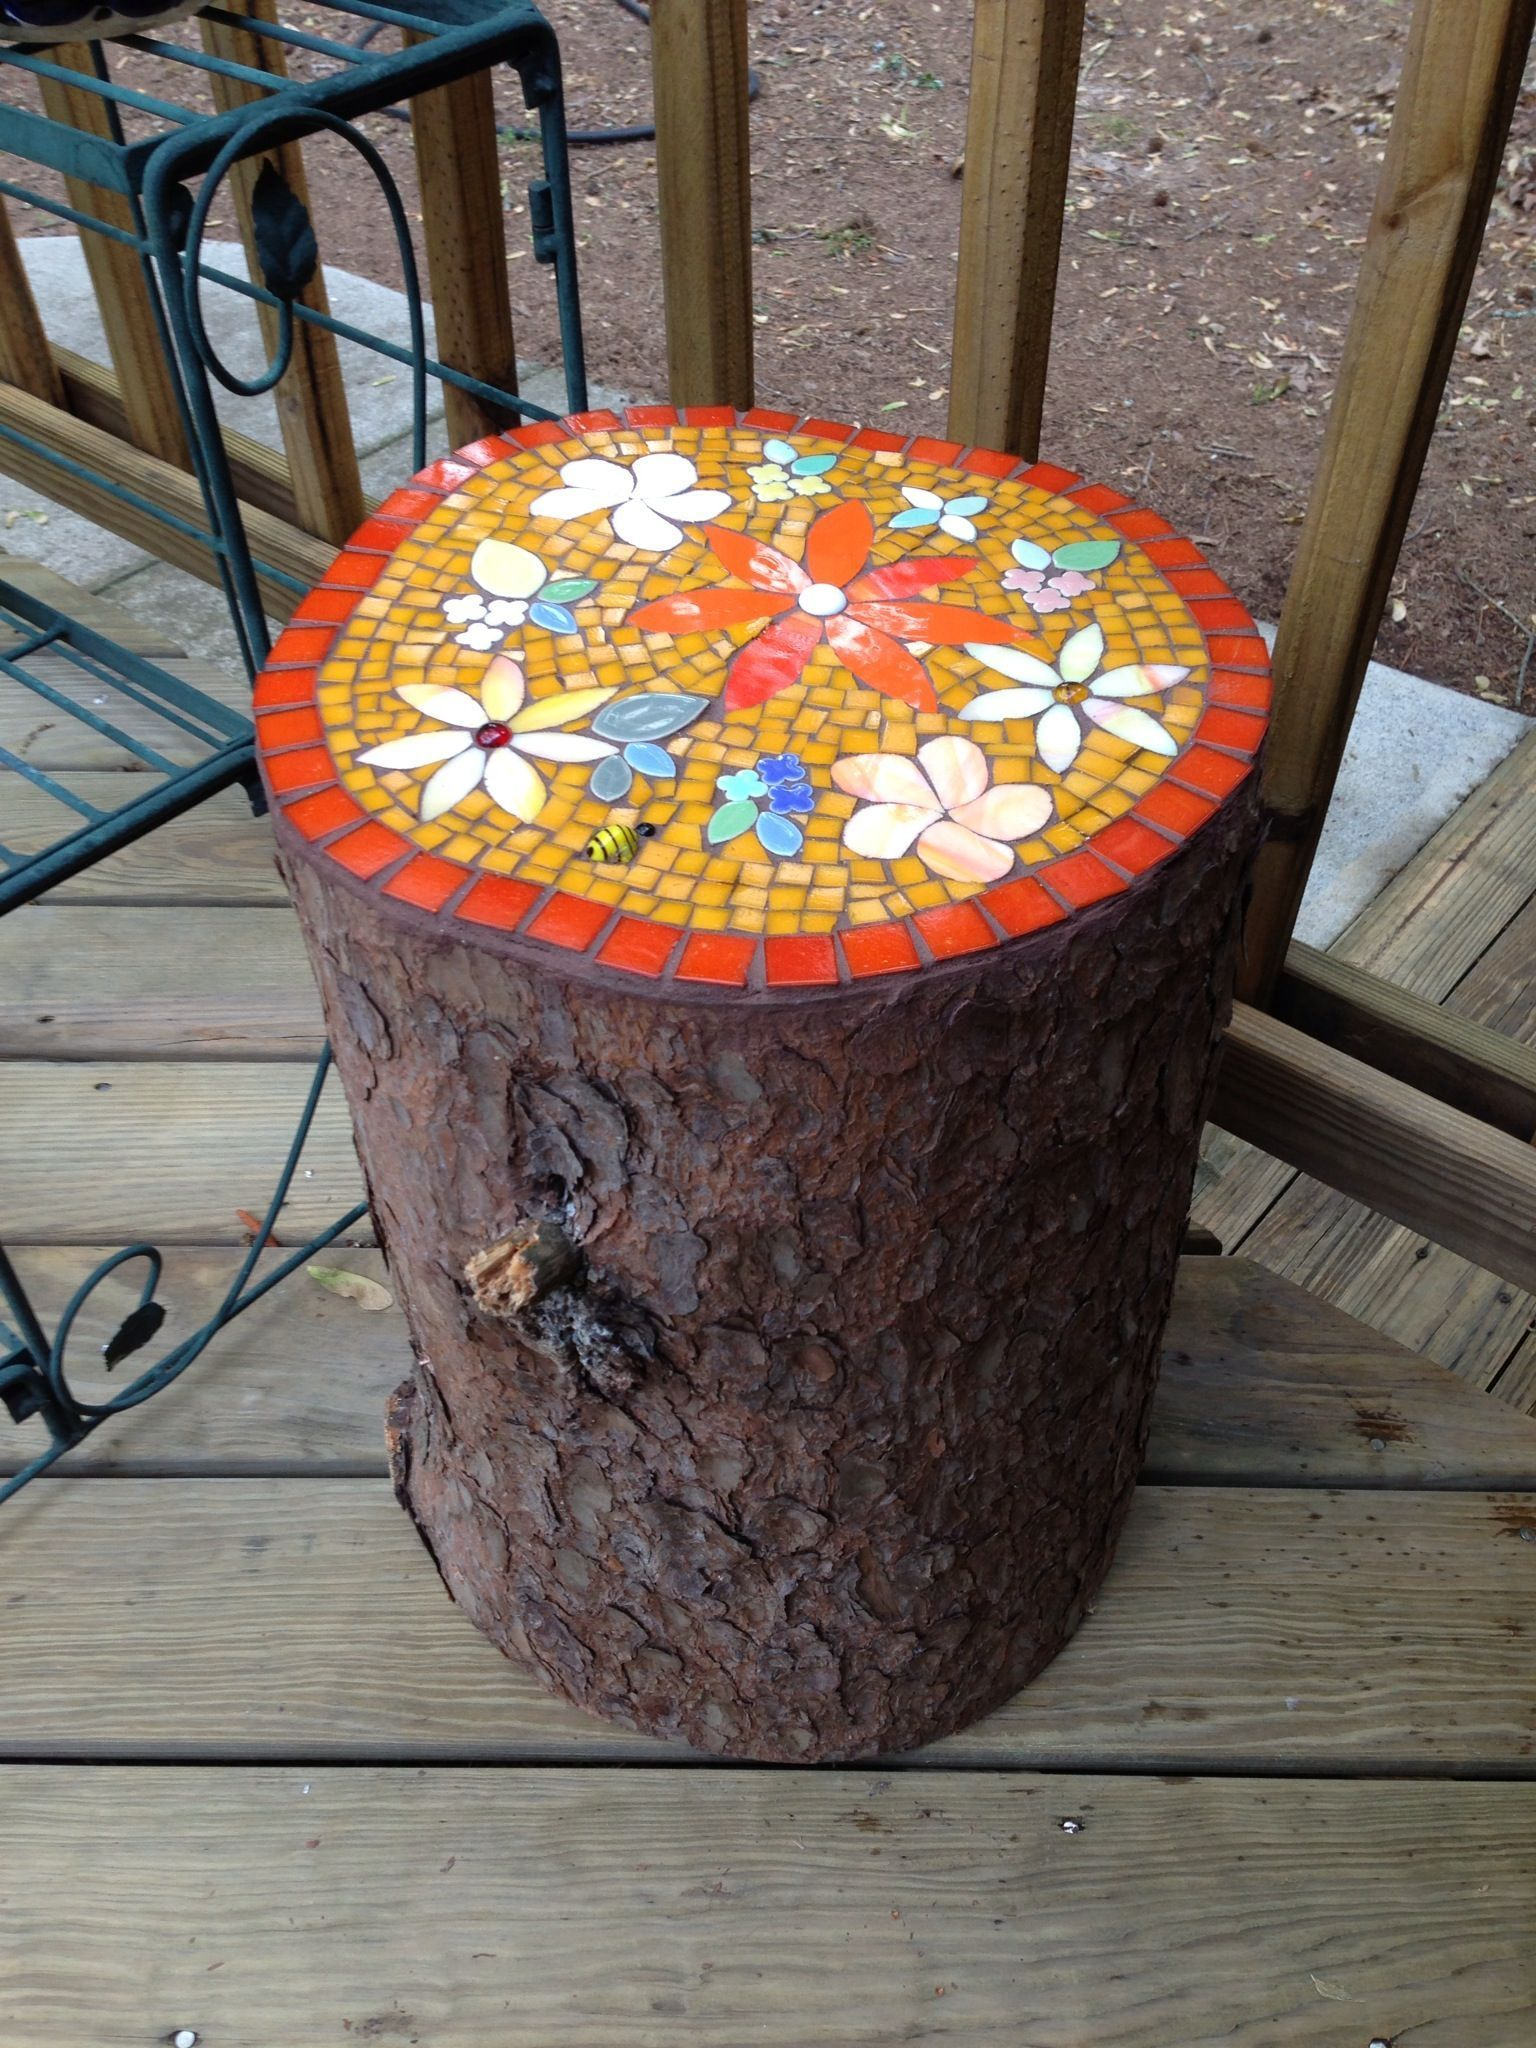 I Would Love To Have A Mosaic Tree Stump Like This One In My